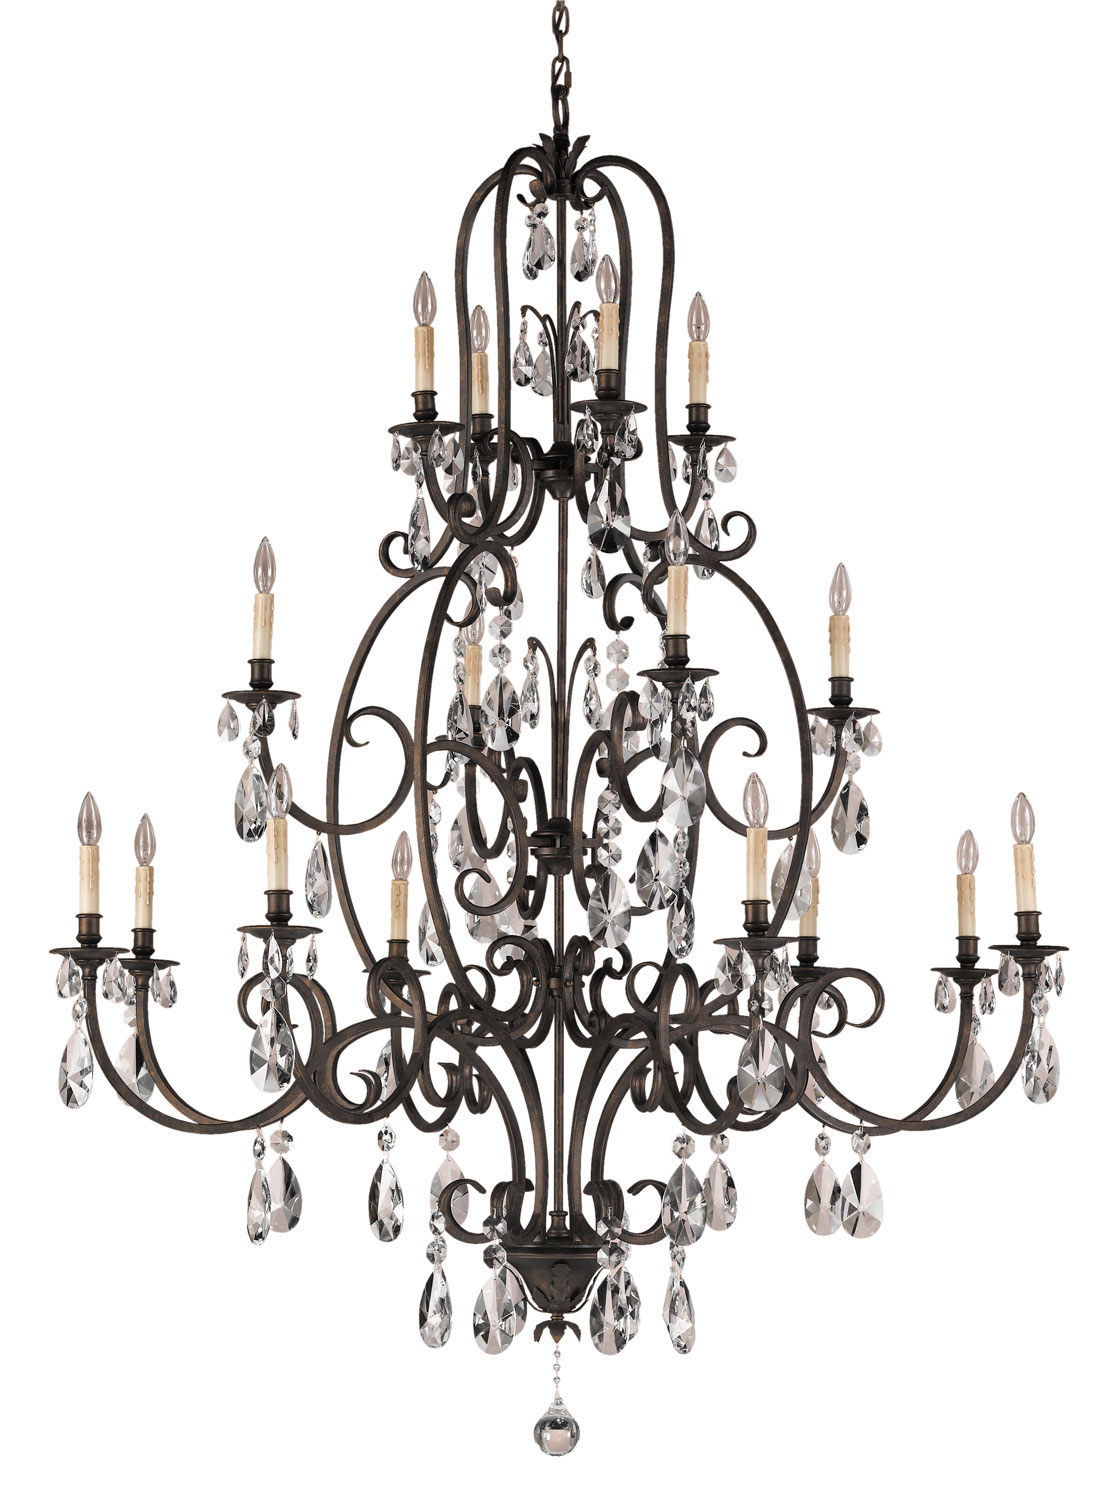 16 Light Chandelier from the Salon Maison collection by Feiss F2230844ATS